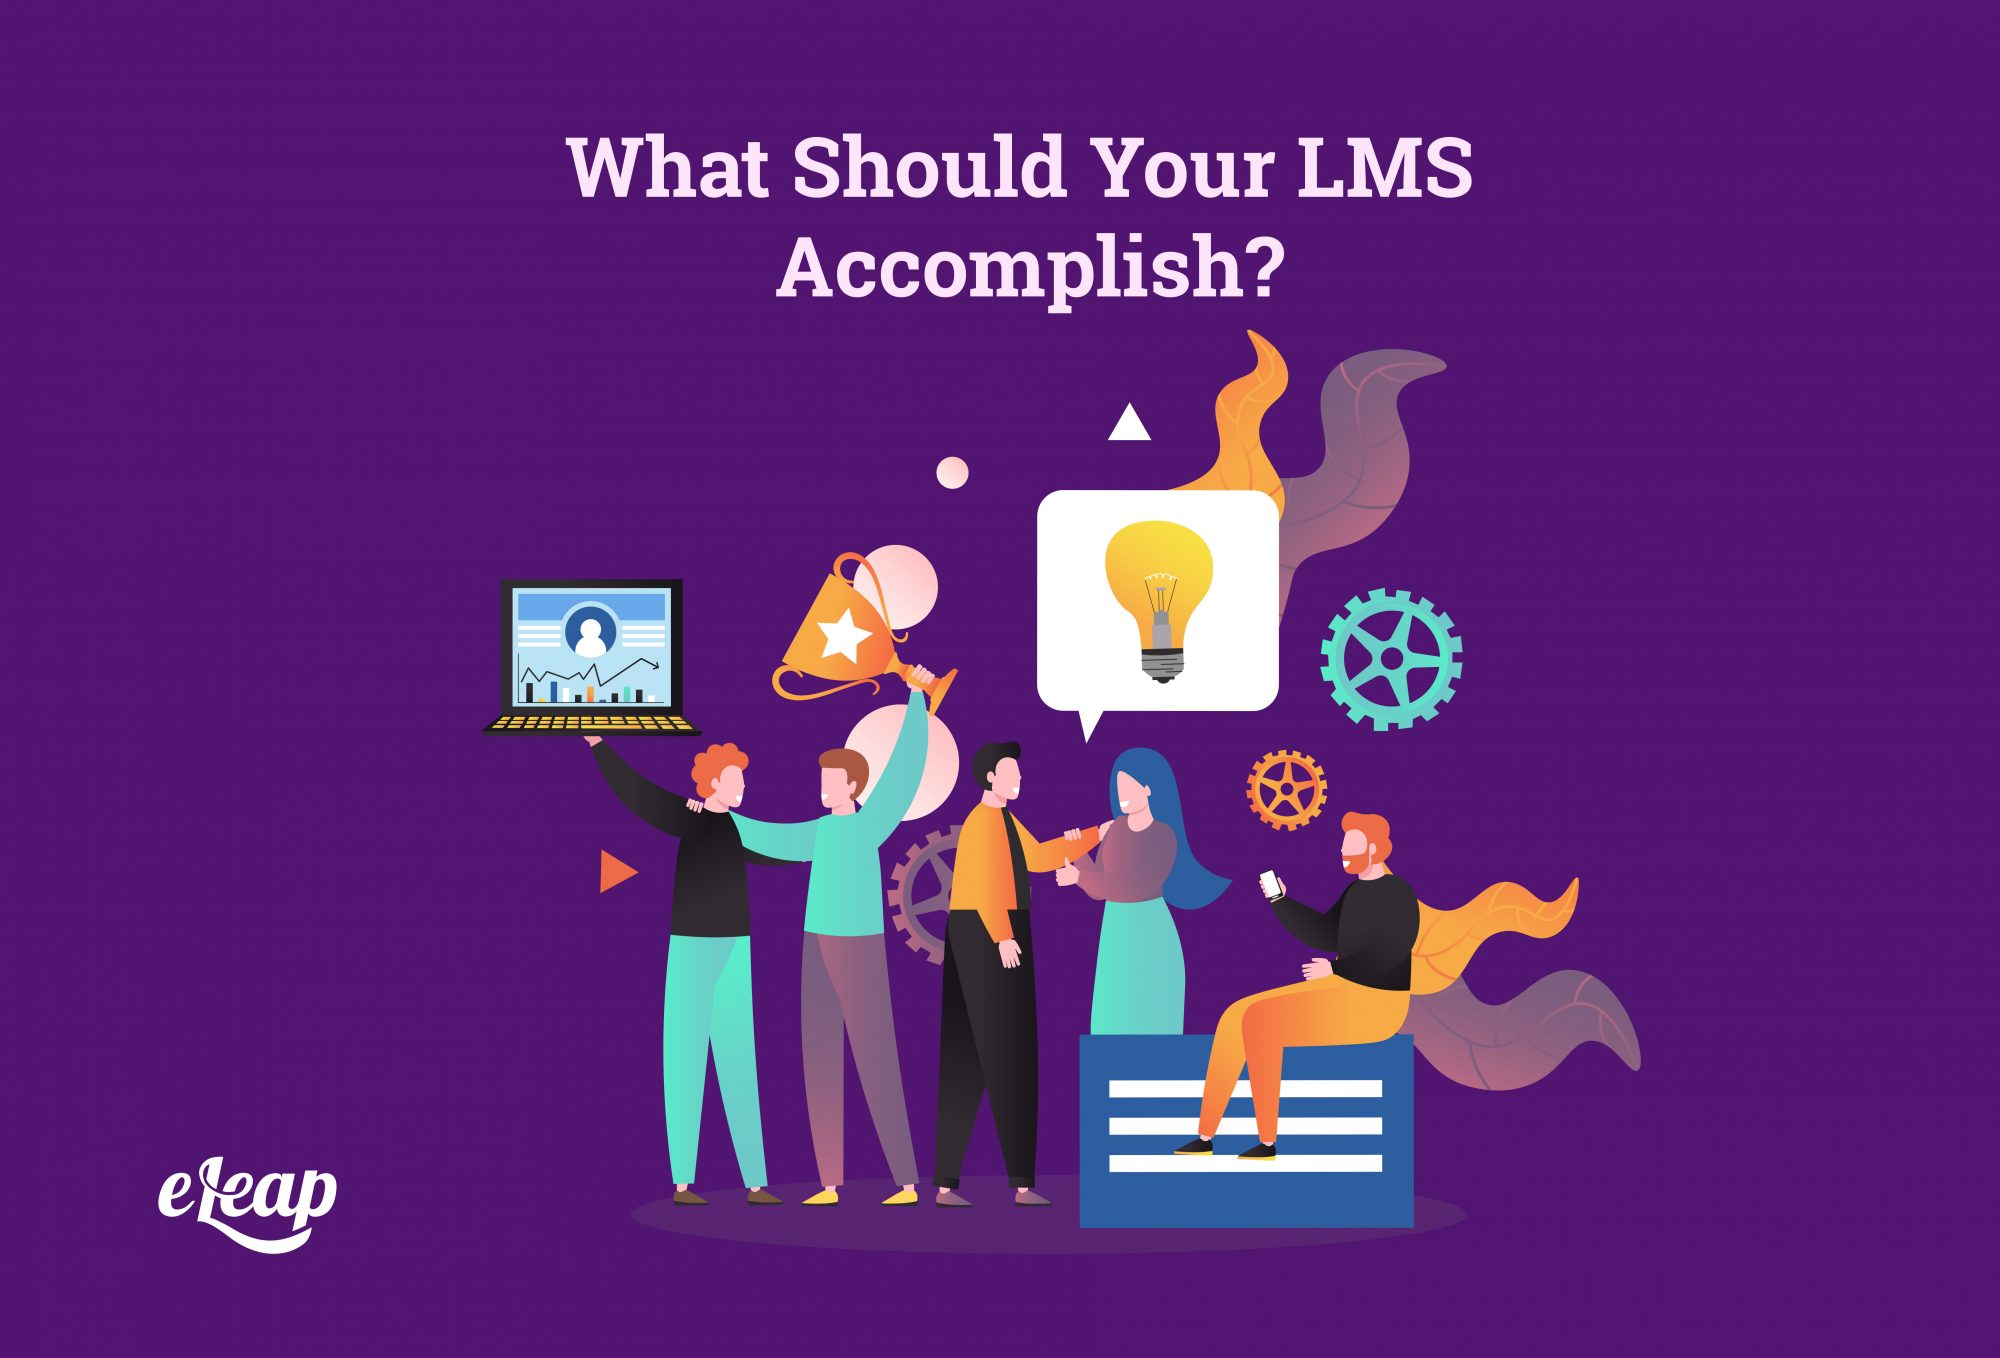 What Should Your LMS Accomplish?